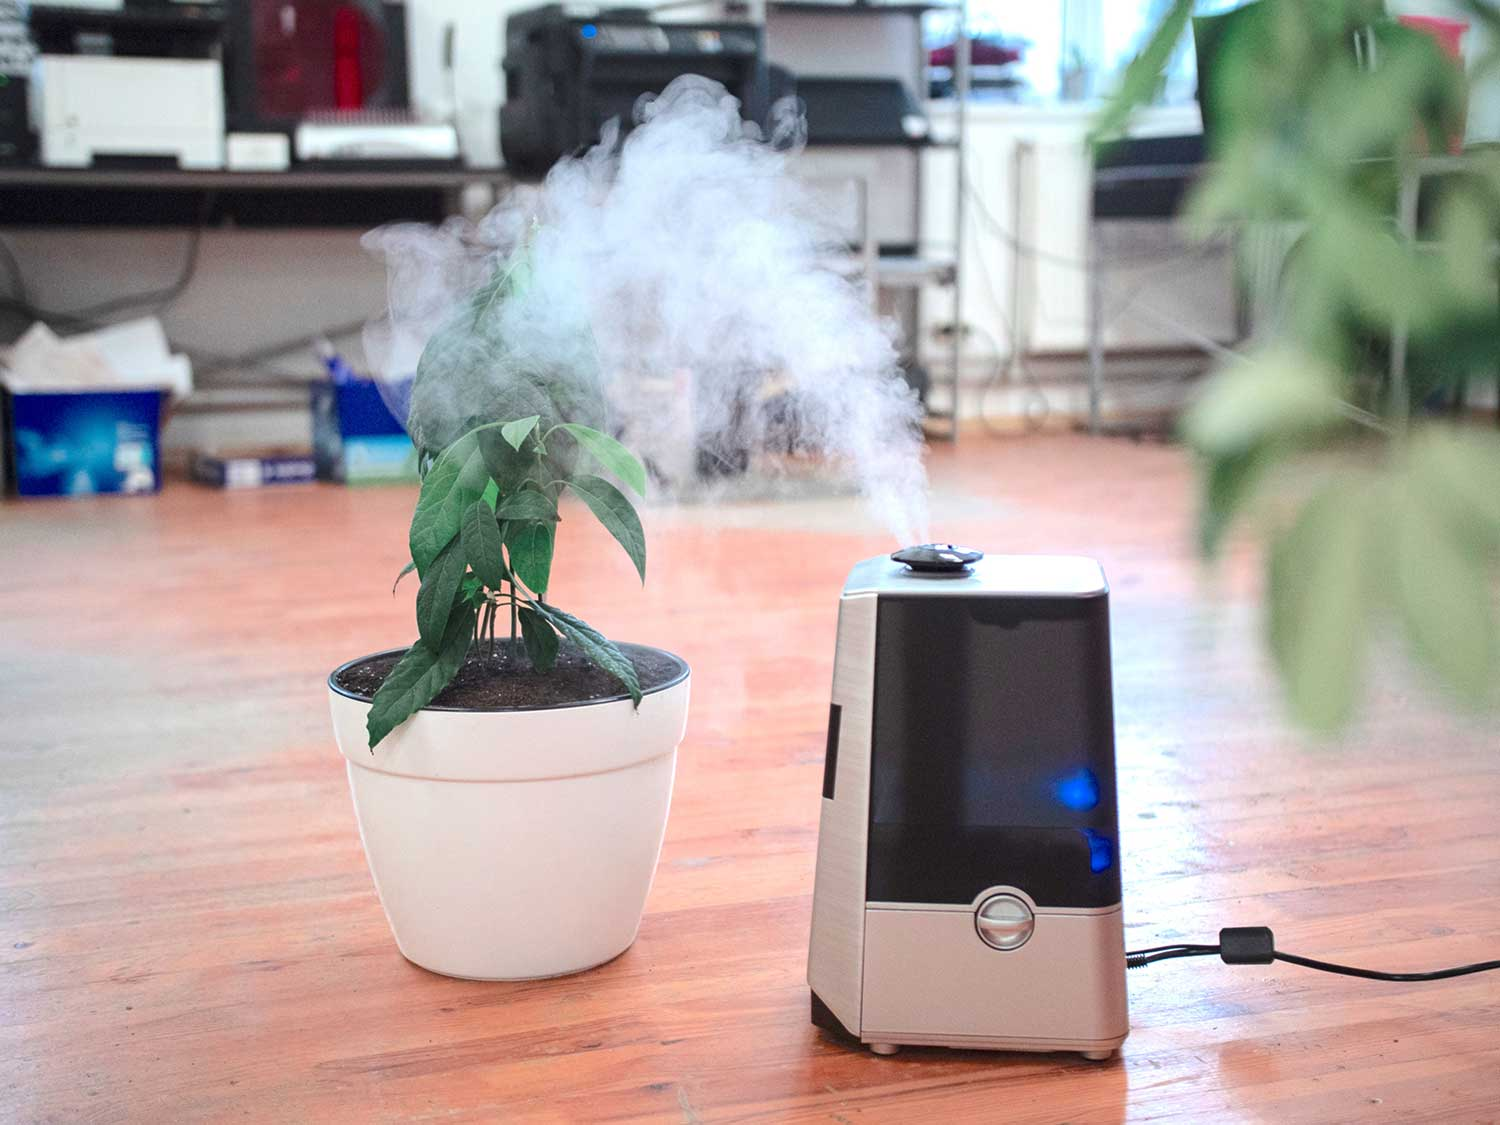 Air humidifier with plant in office.